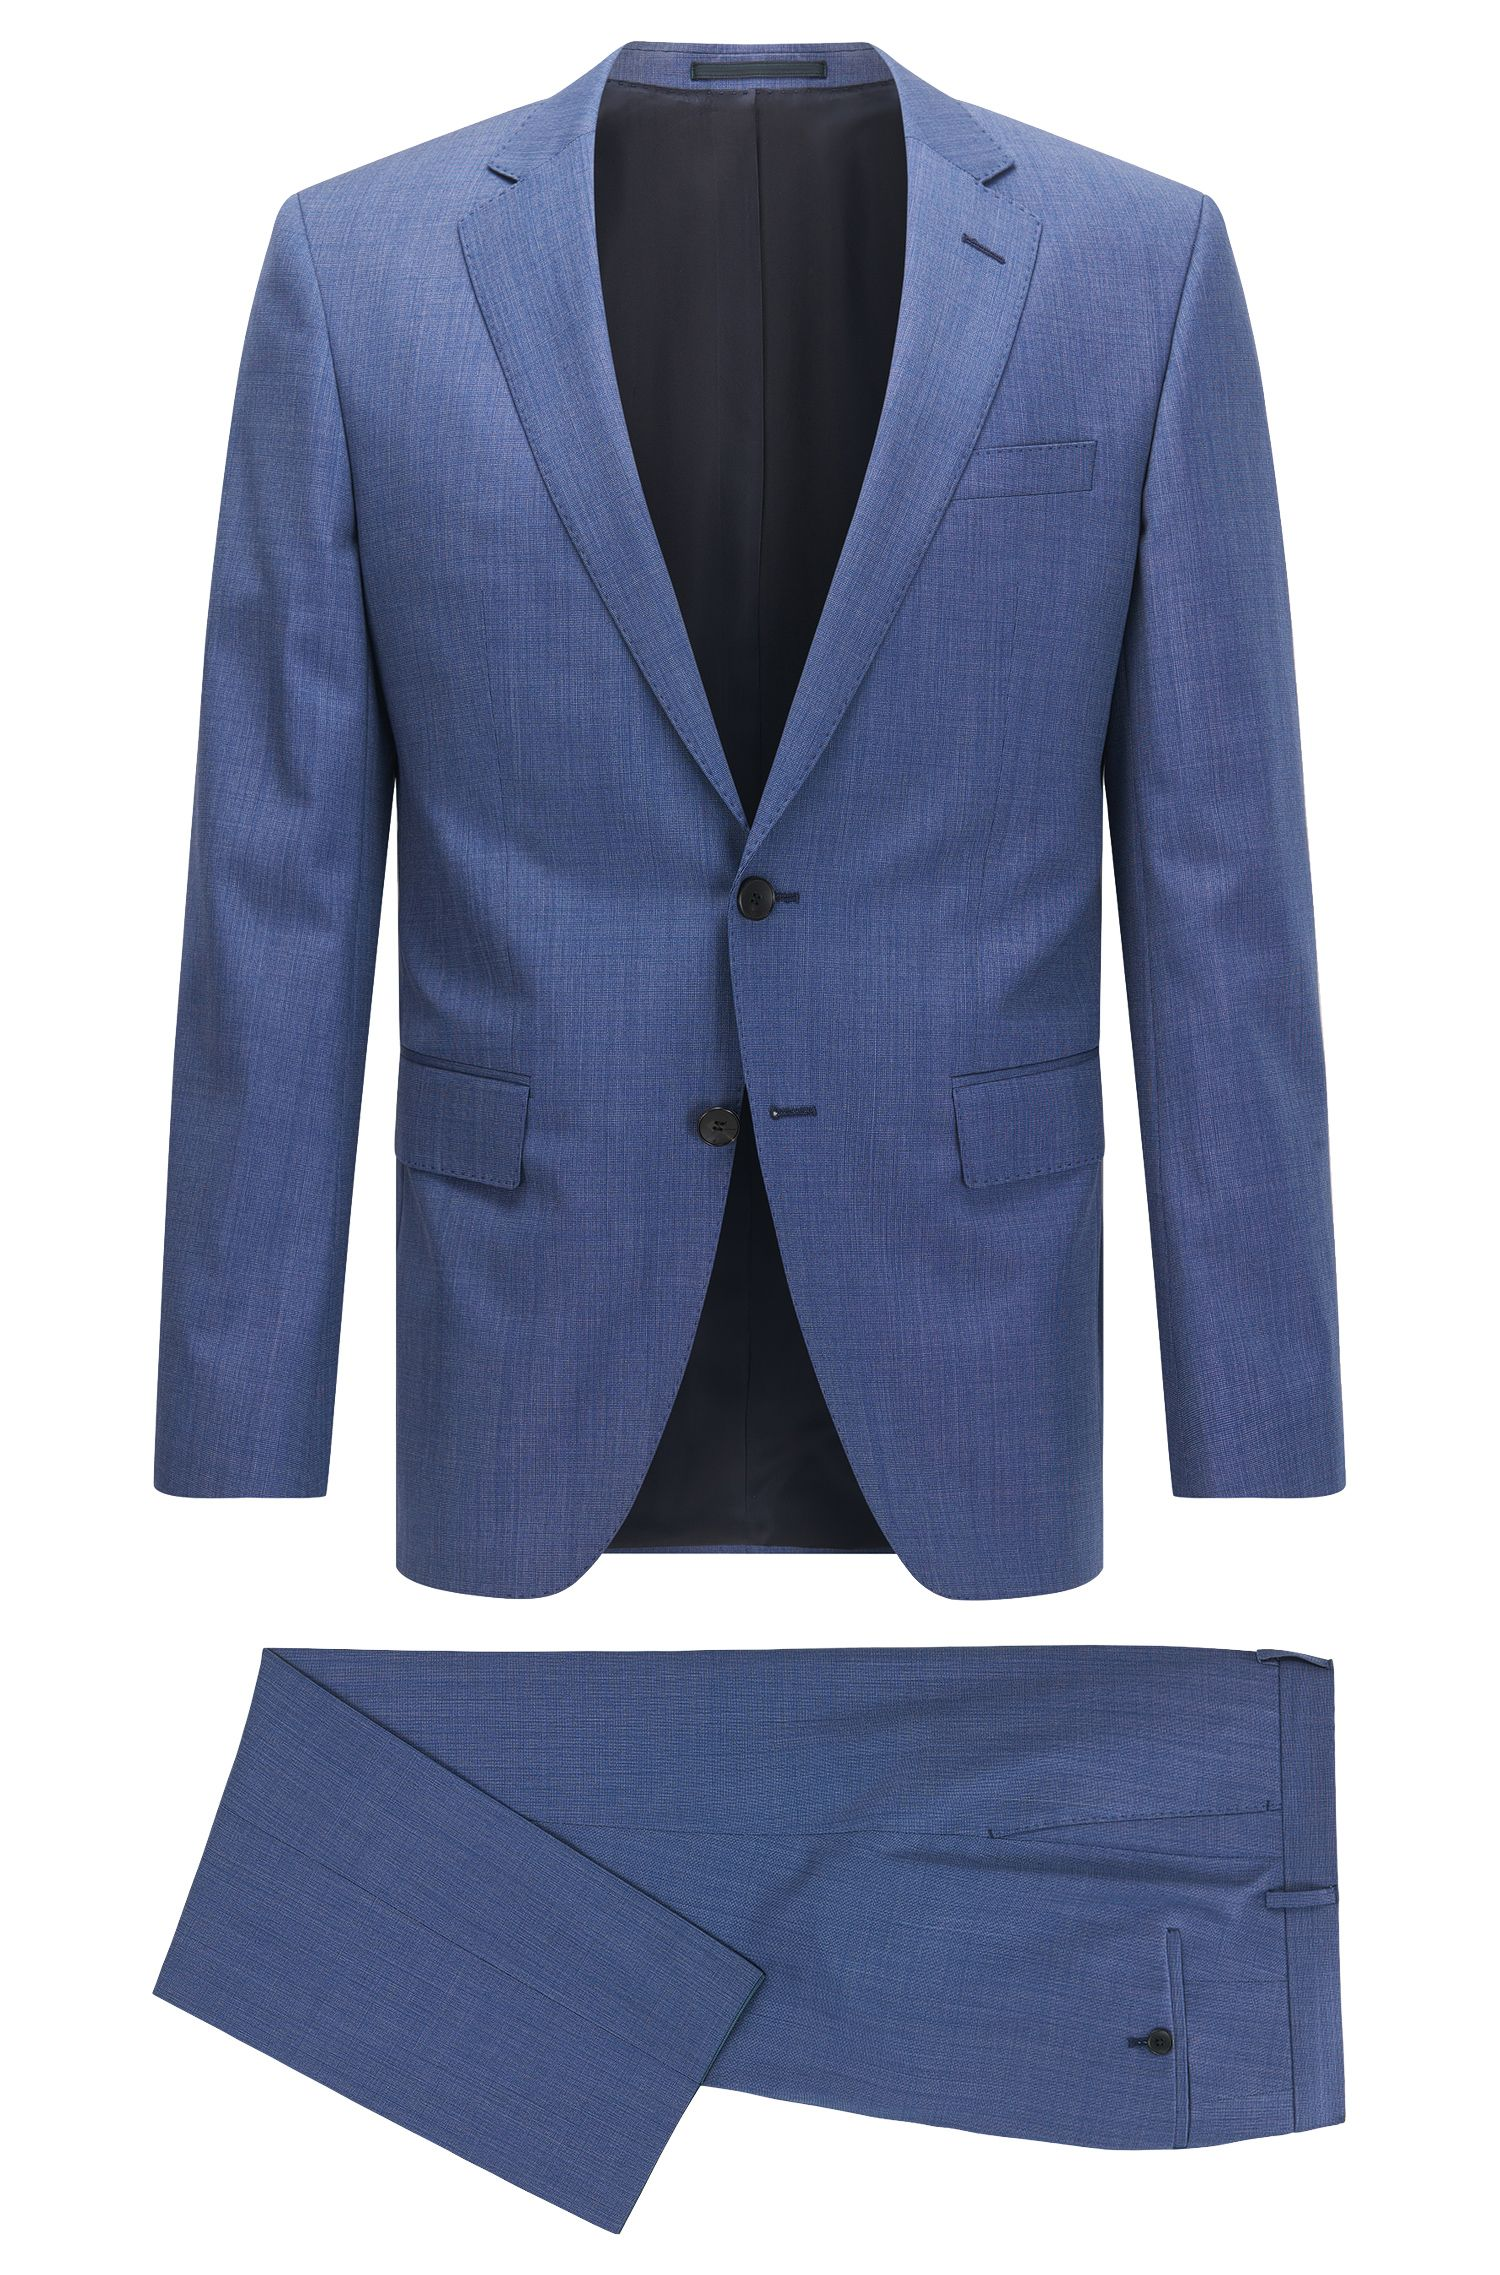 Birdseye Super 110 Virgin Wool Suit, Slim Fit | Huge/Genius